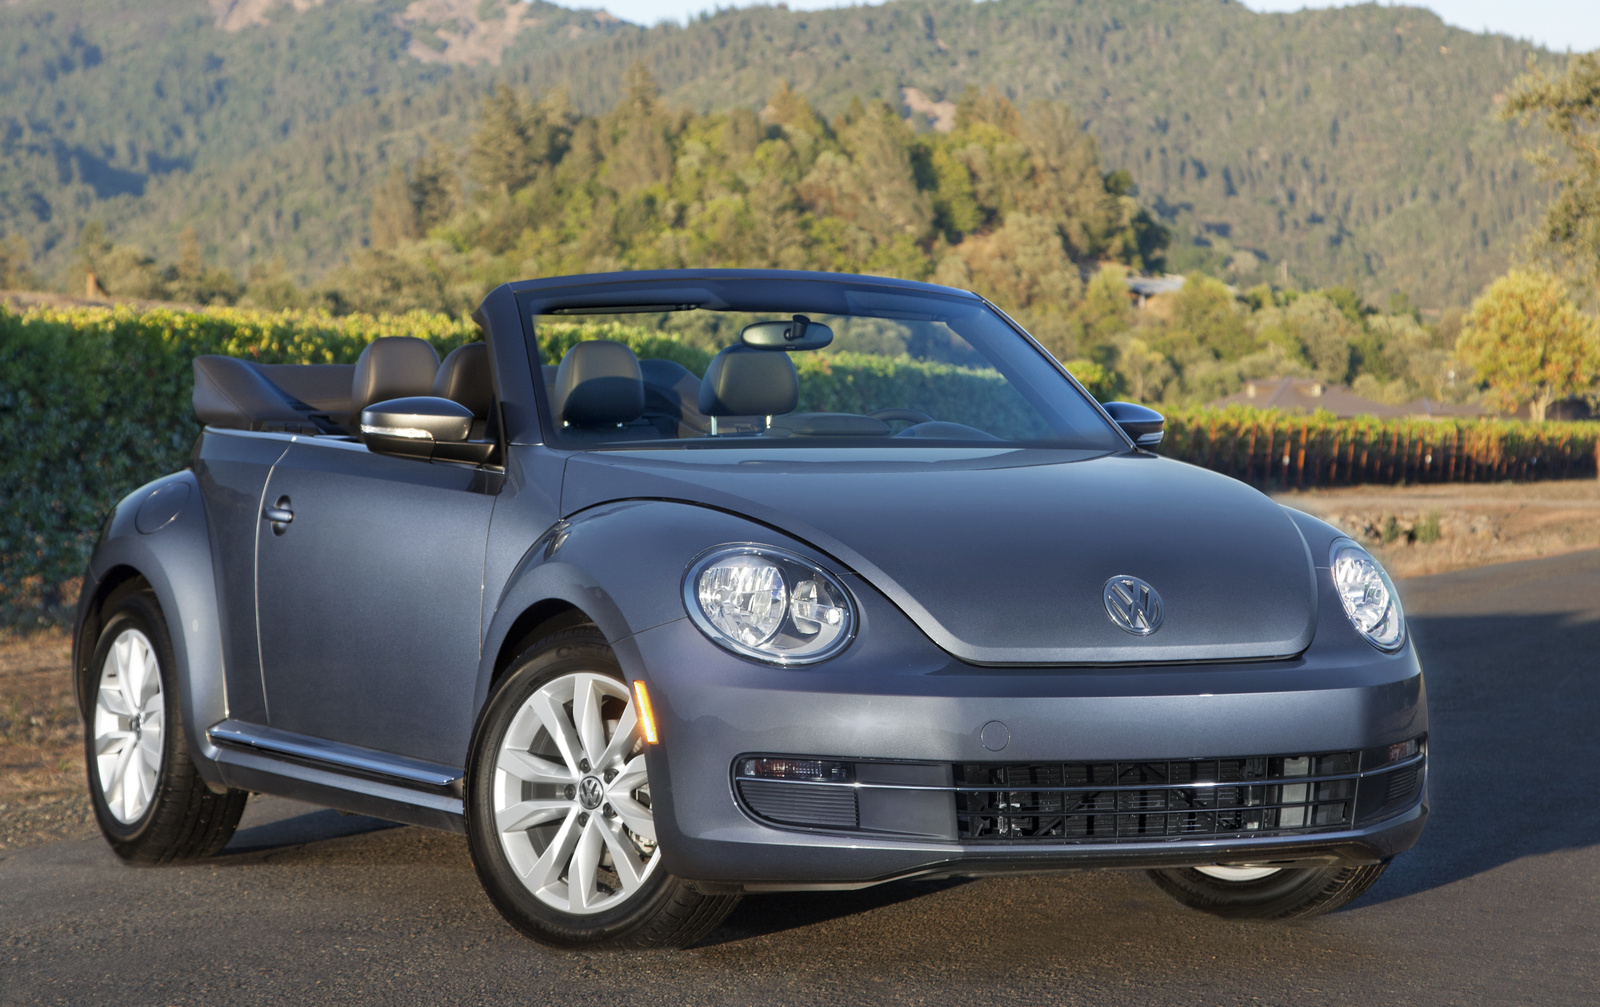 2016 Volkswagen Beetle - Review - CarGurus